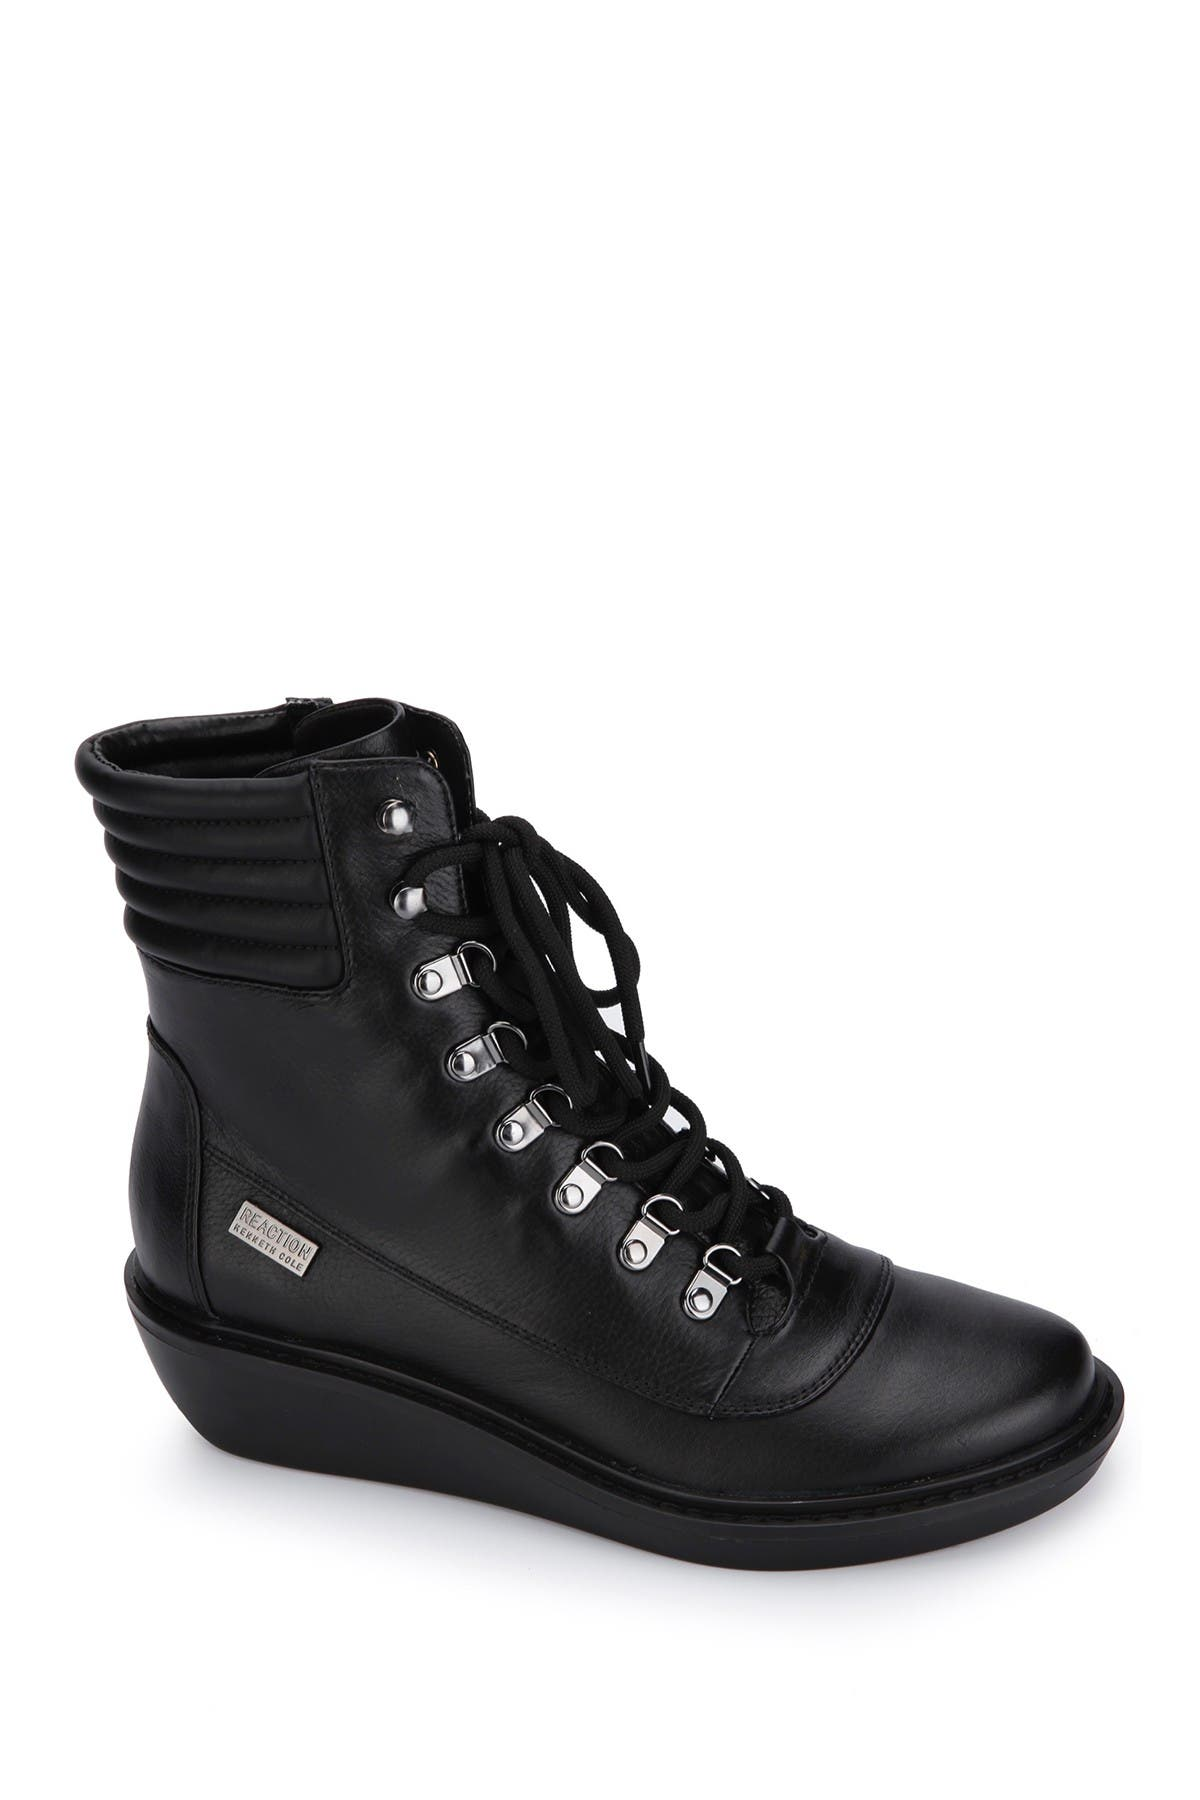 Image of Kenneth Cole Reaction Rhyme Hiker Leather Lace Up Boot